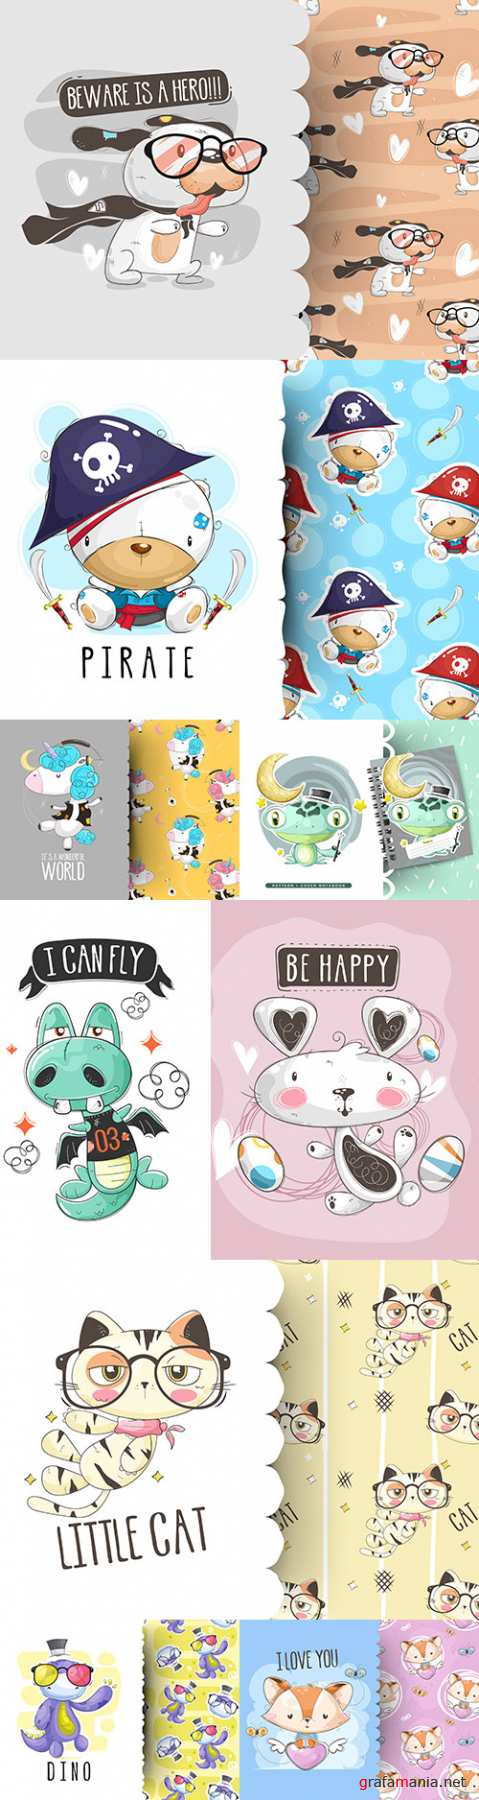 Funny cartoon heroes and decorative pattern